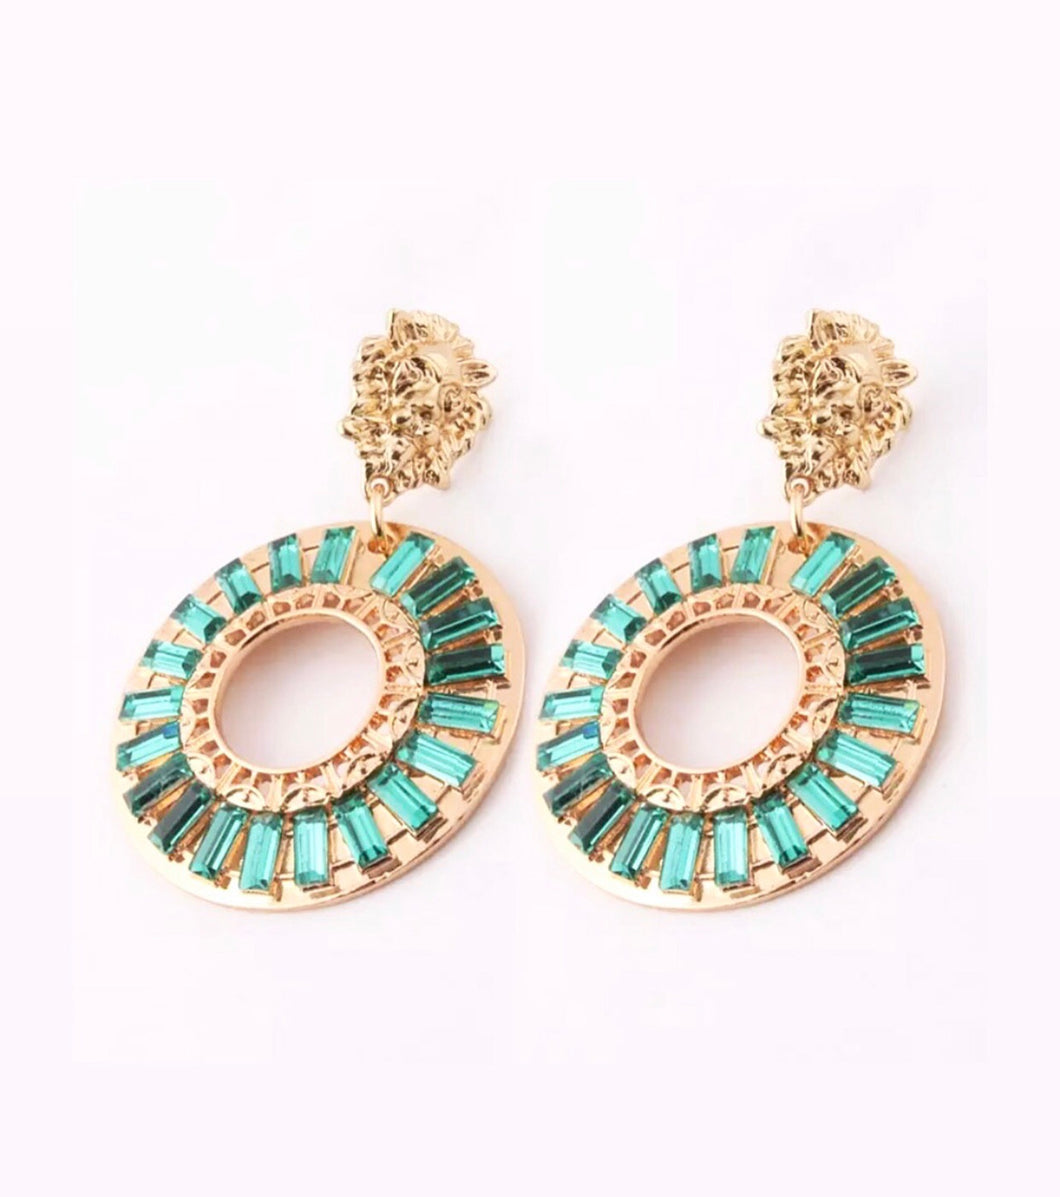 Lion turquoise rhinestone earrings